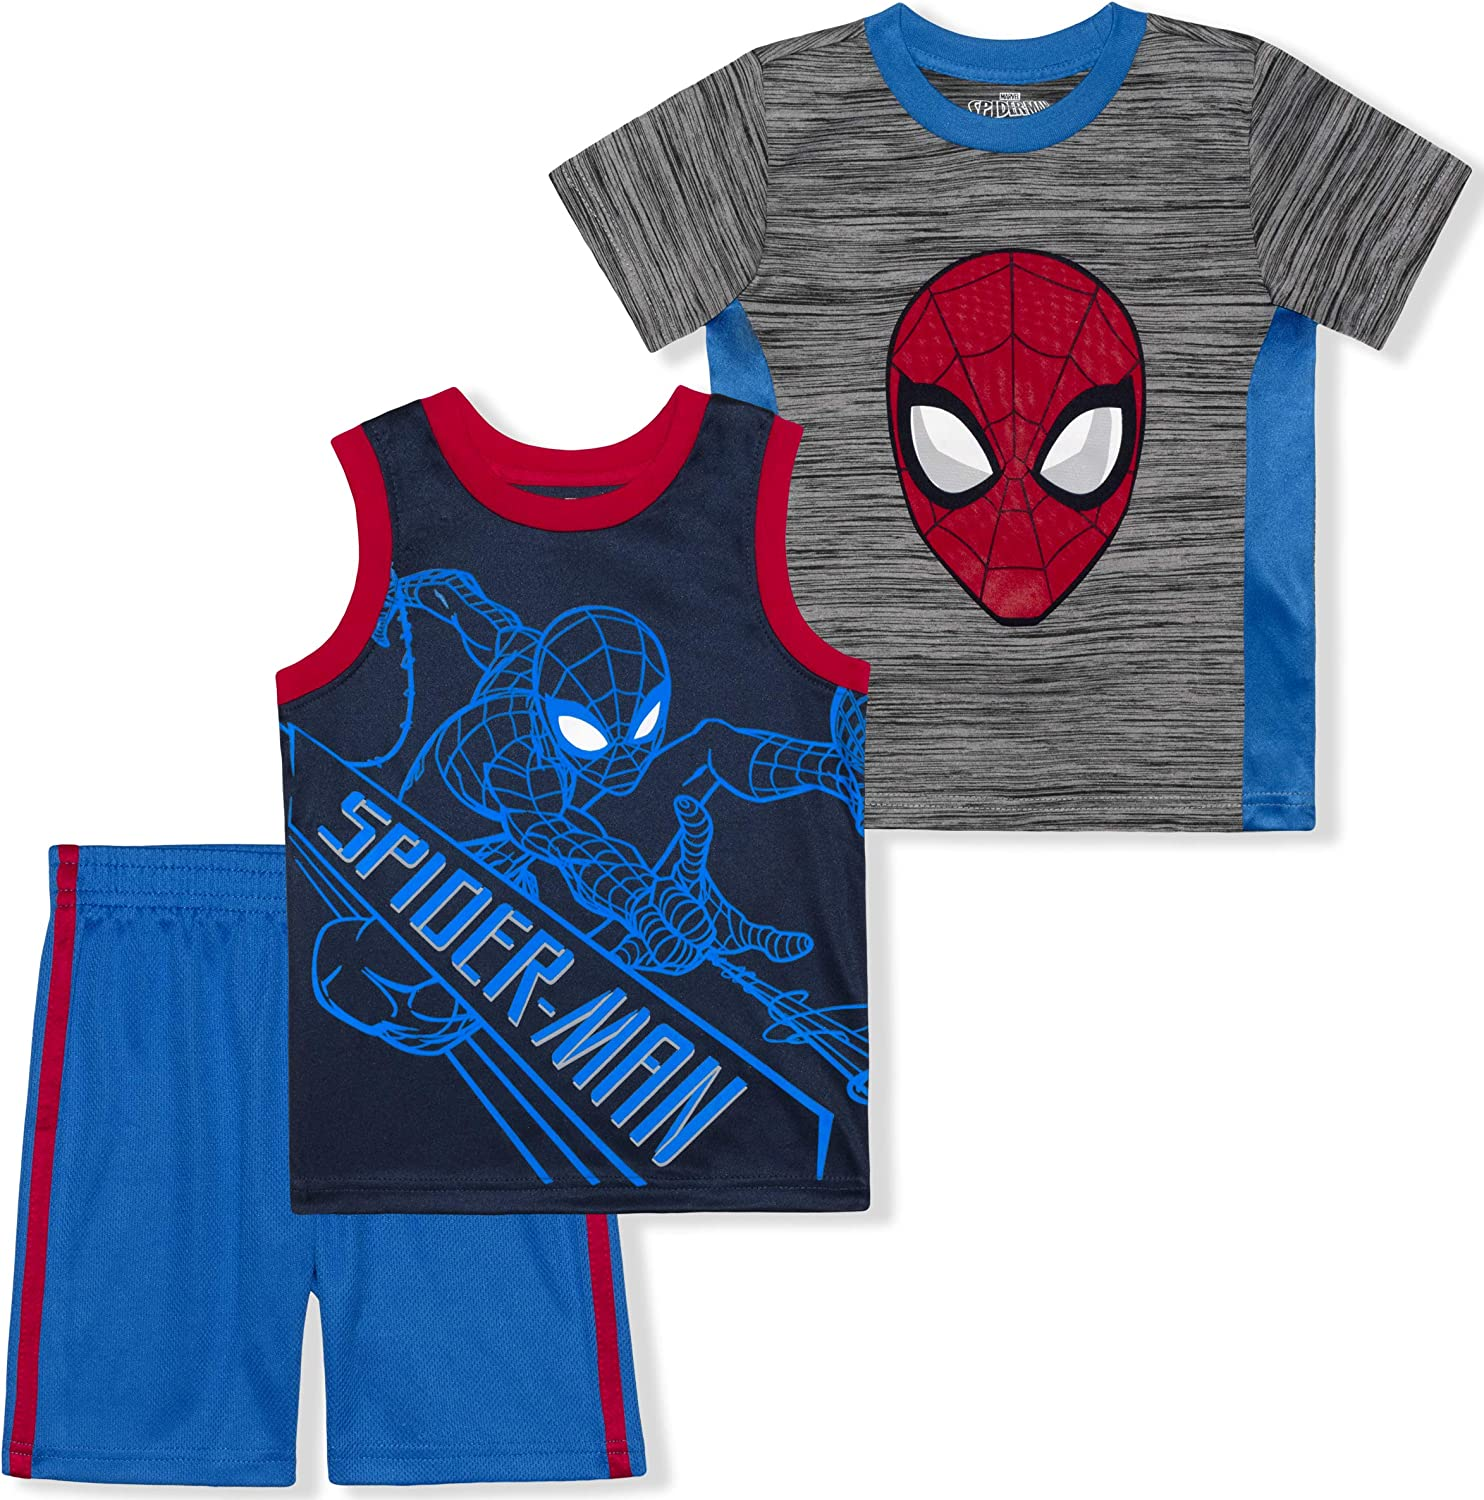 Marvel Boys 3-Piece Shirts and Short Set with Avengers Superheroes